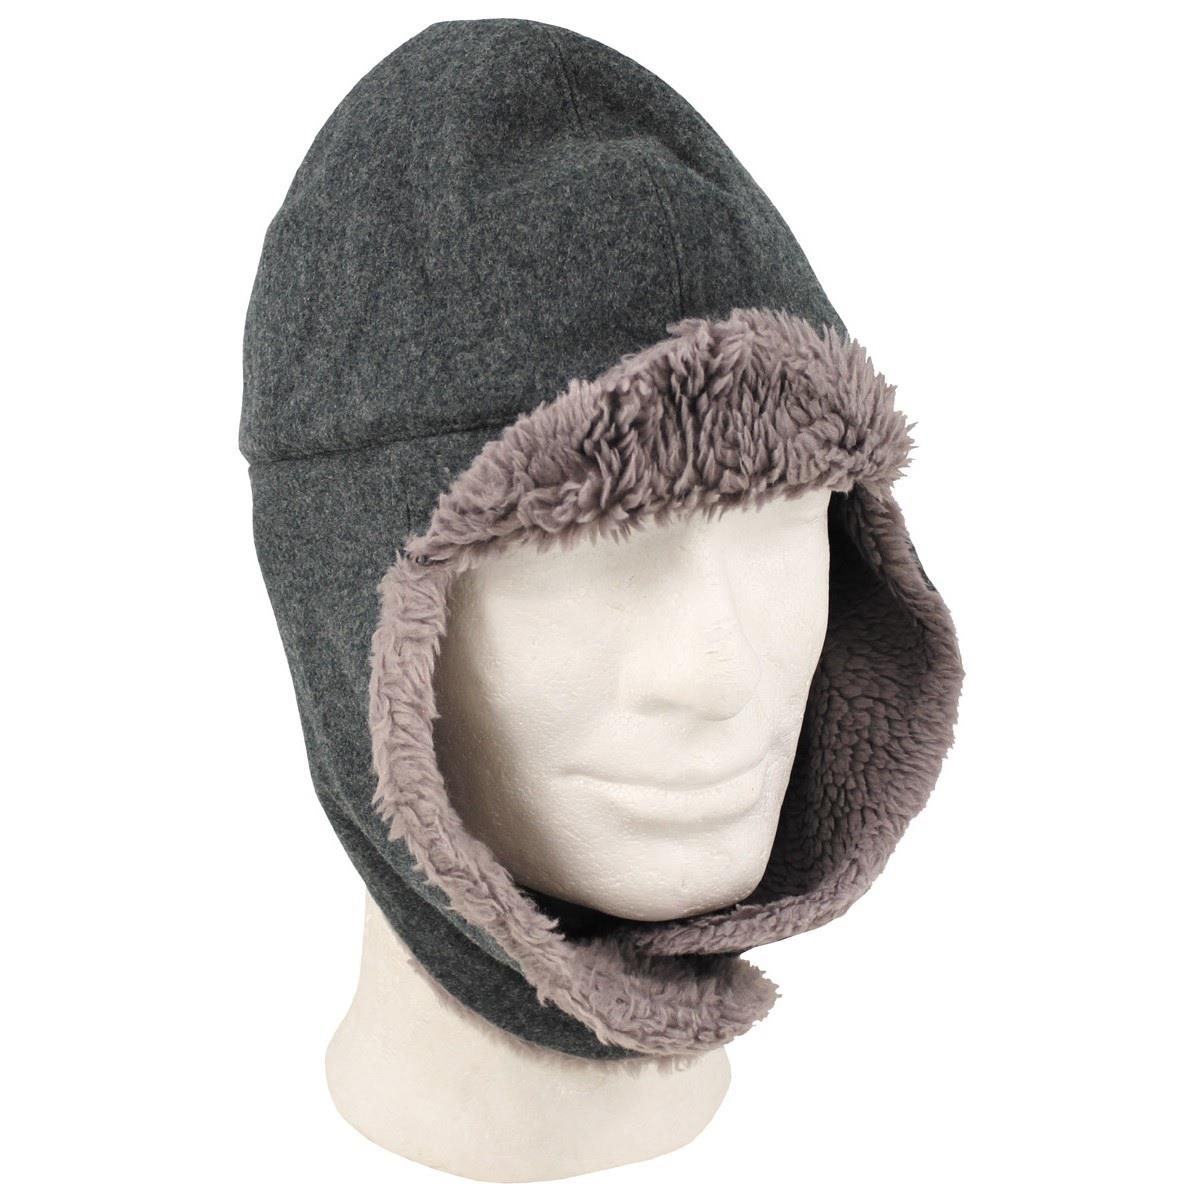 84a1144211f Details about Vintage Swiss military surplus cold weather cap hat with ear  covers